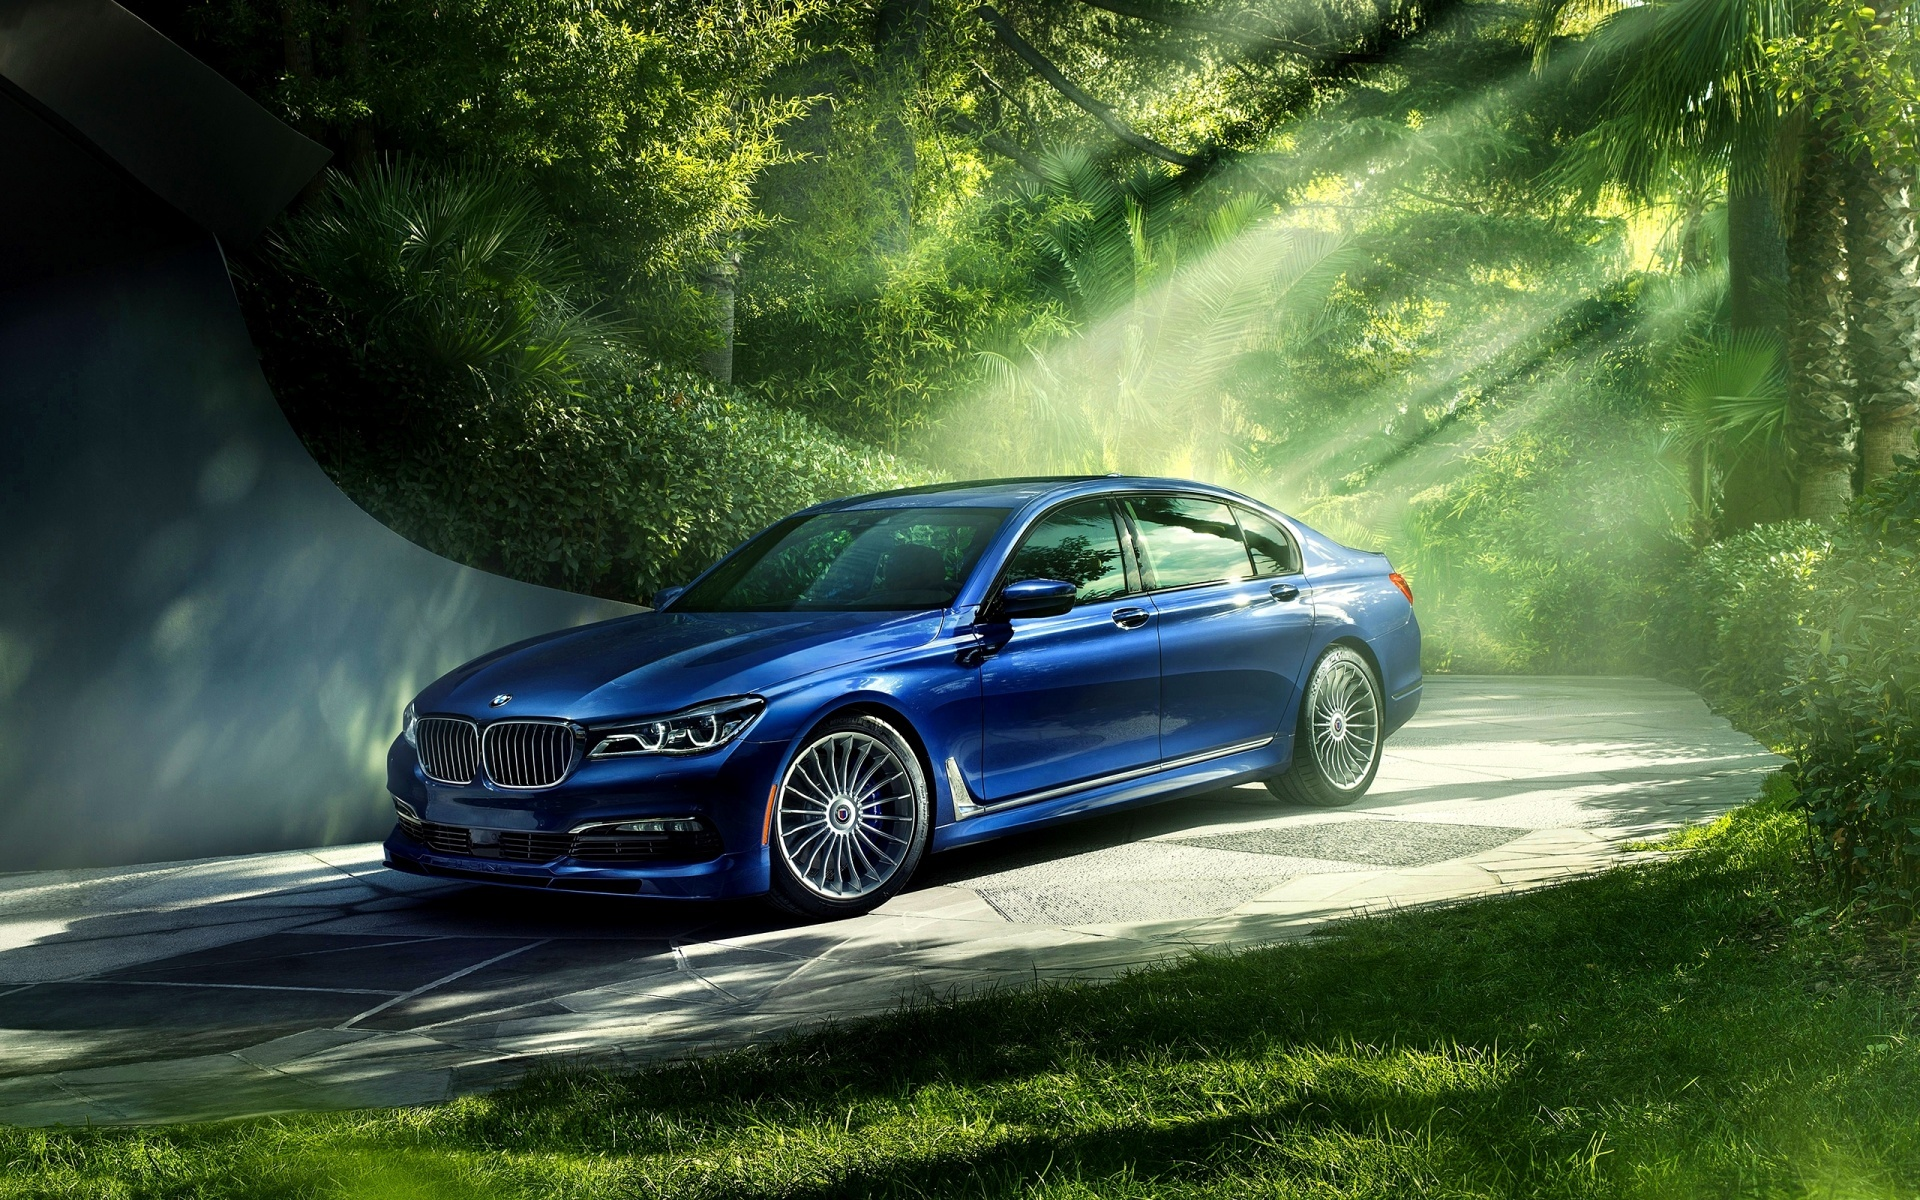 bmw_alpina_b7_xdrive-1920x1200.jpg